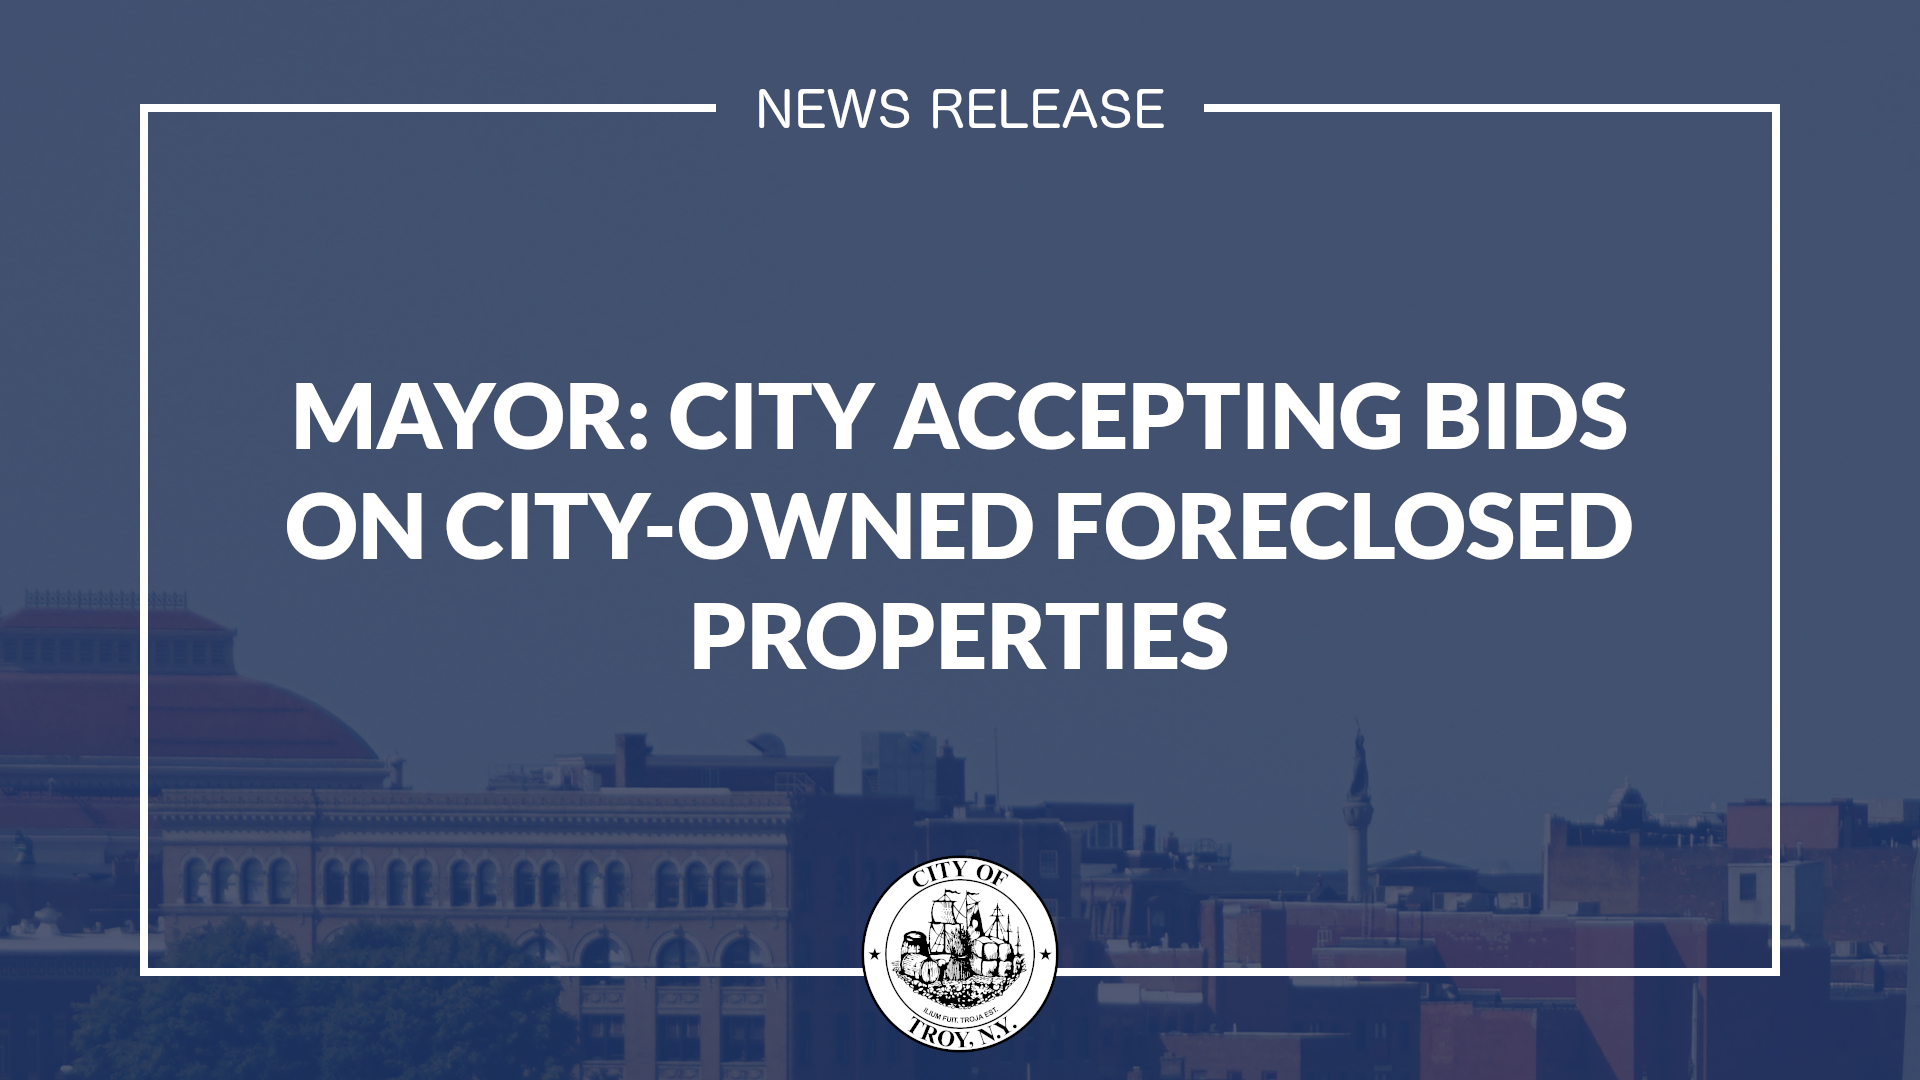 White text against transparent blue background. Text reads Mayor: City Accepting Bids on City-Owned Foreclosed Properties. The downtown Troy skyline is partially visible in the background